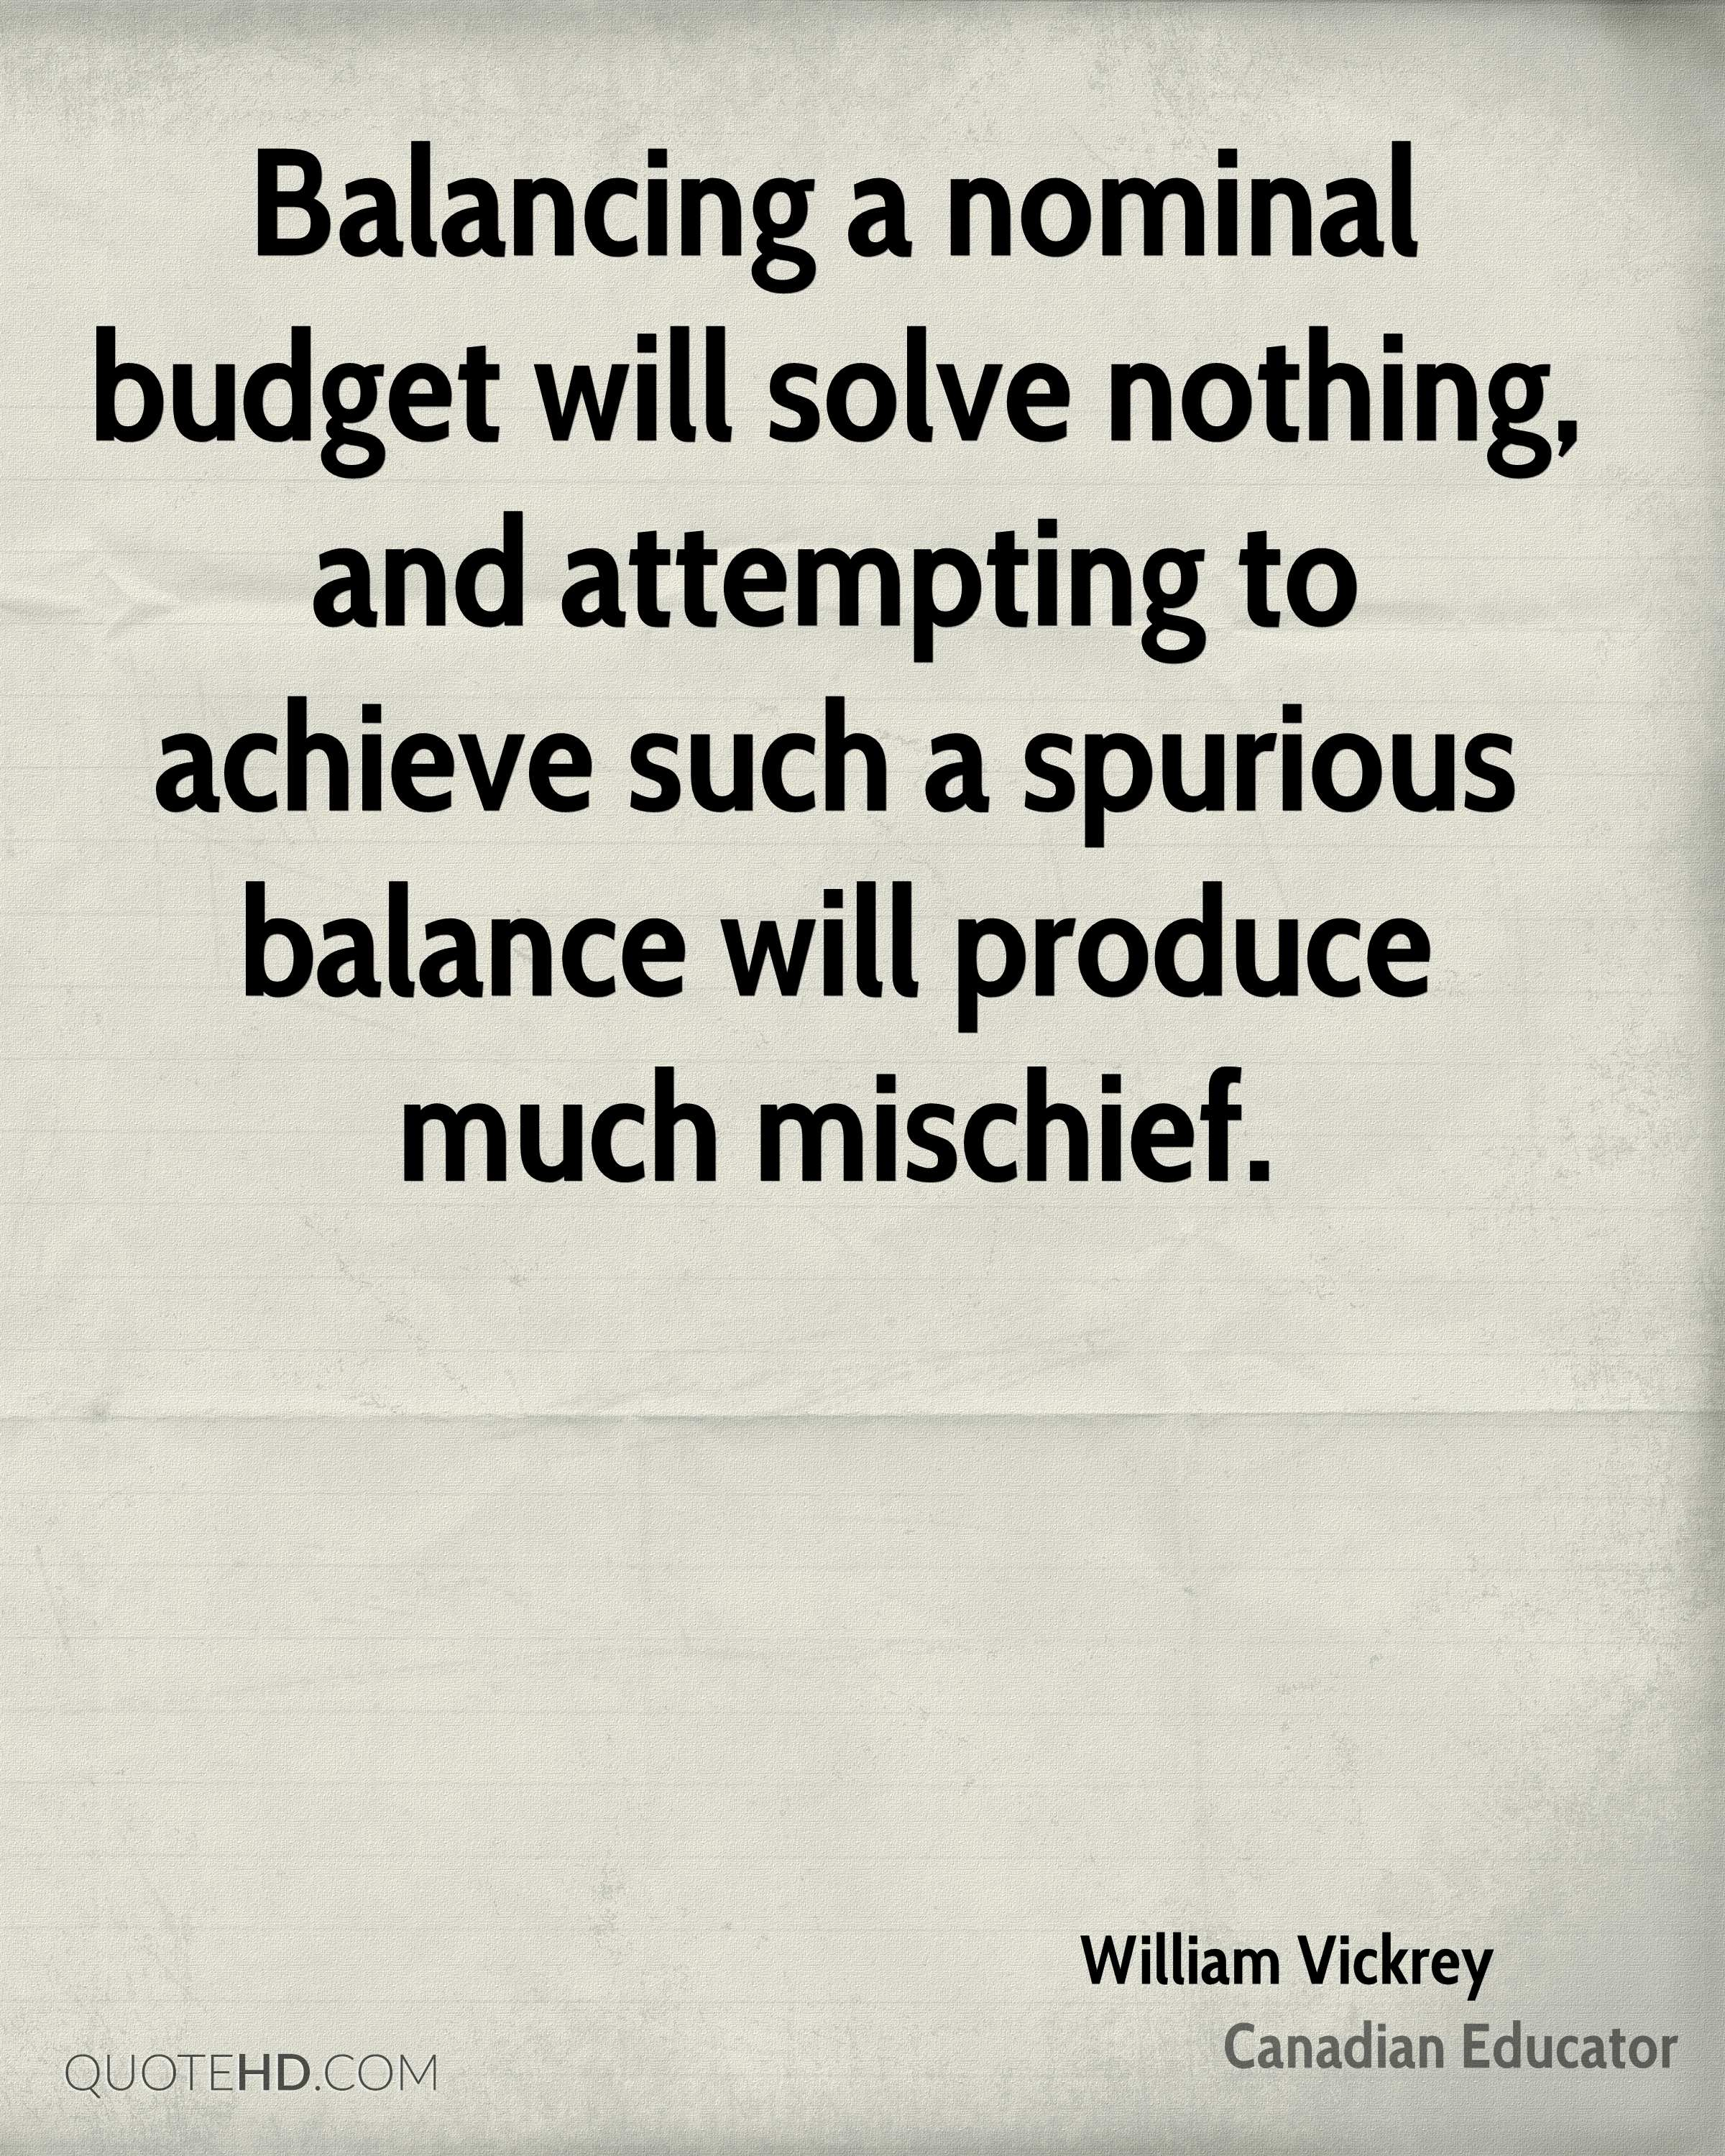 Balancing a nominal budget will solve nothing, and attempting to achieve such a spurious balance will produce much mischief.